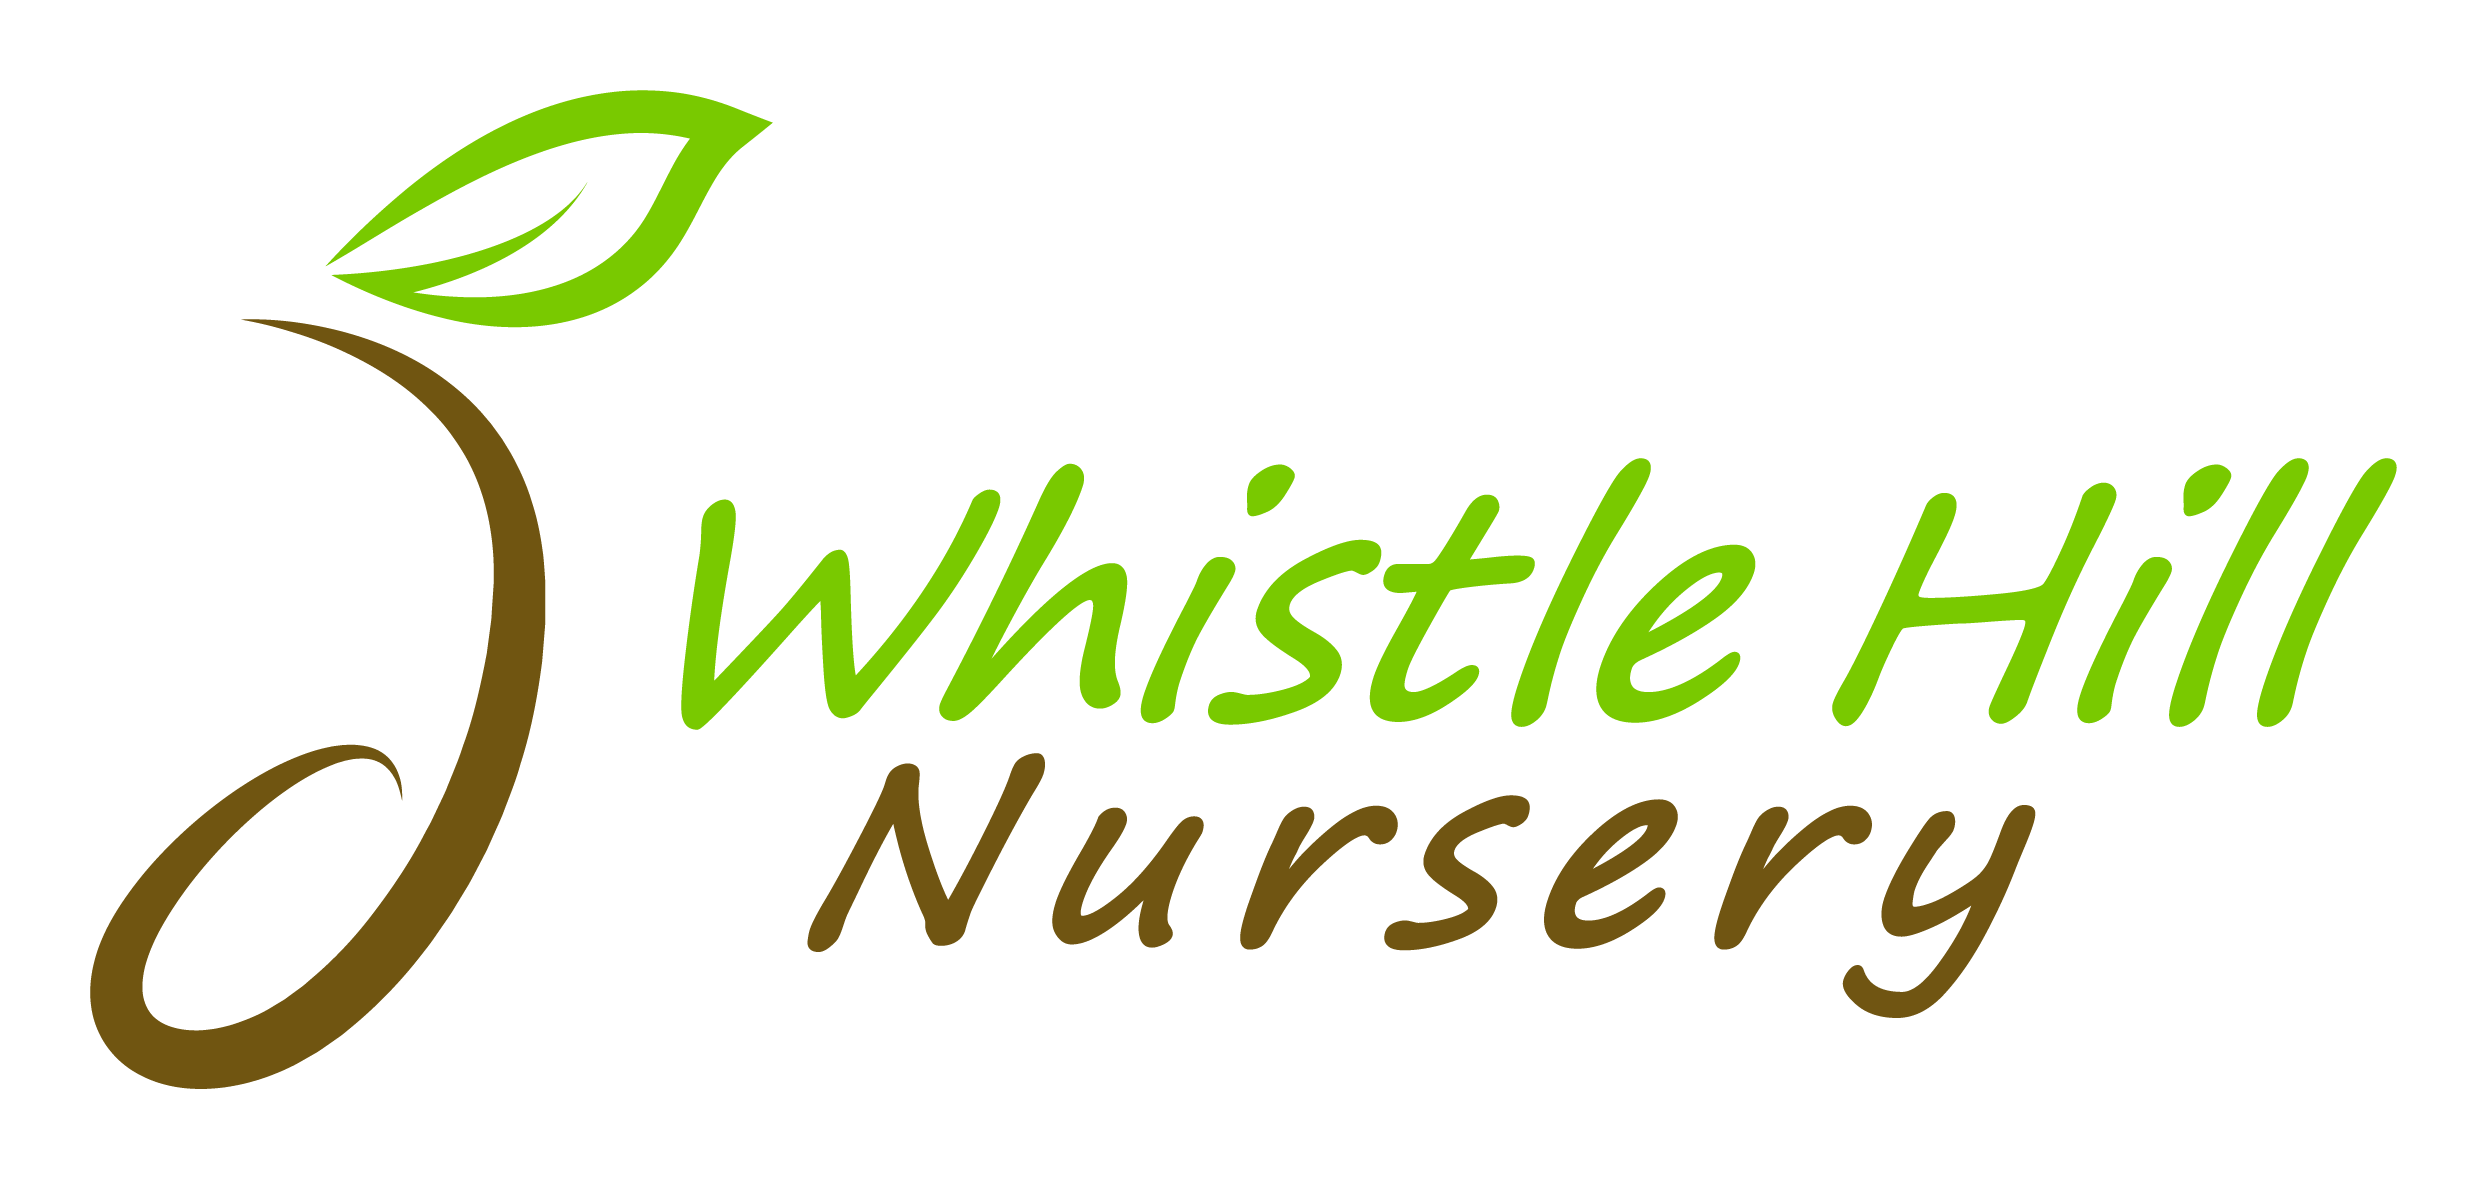 Plant logo shaped like a musical note with nursery name in green and brown